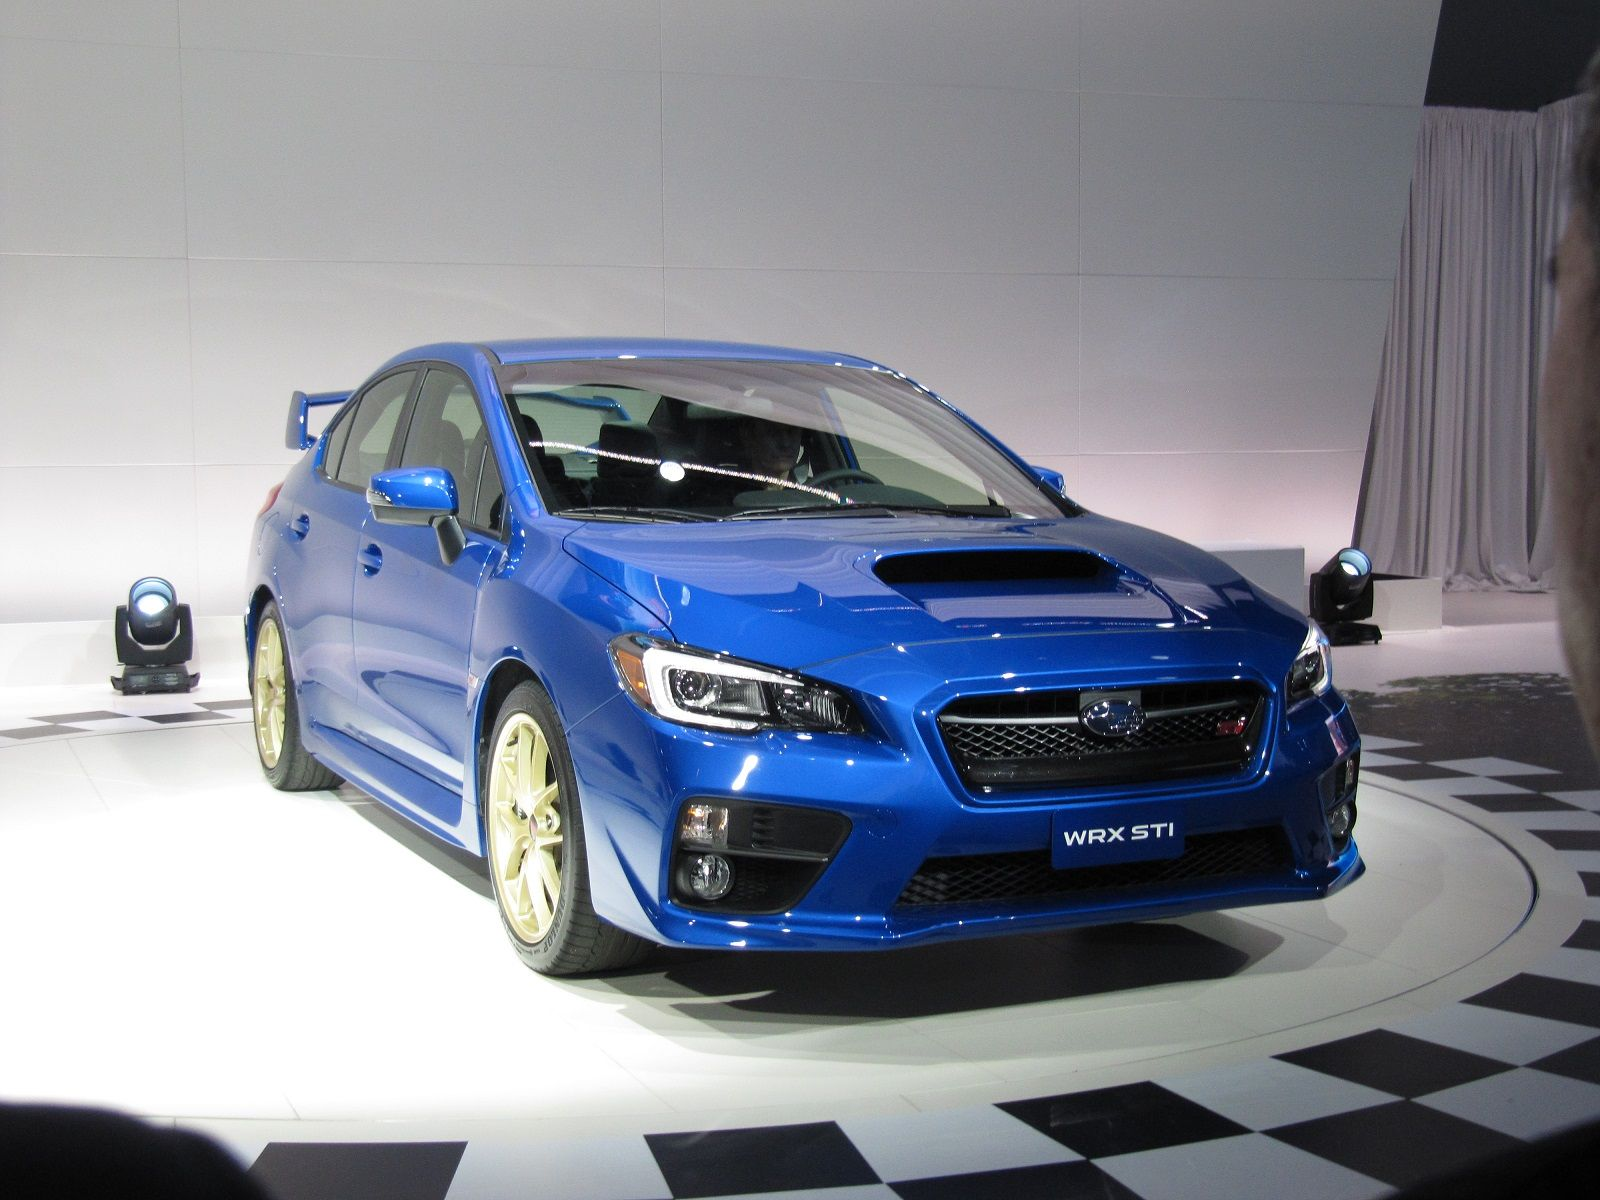 2015 Subaru WRX STI Front Three Quarter 03 25